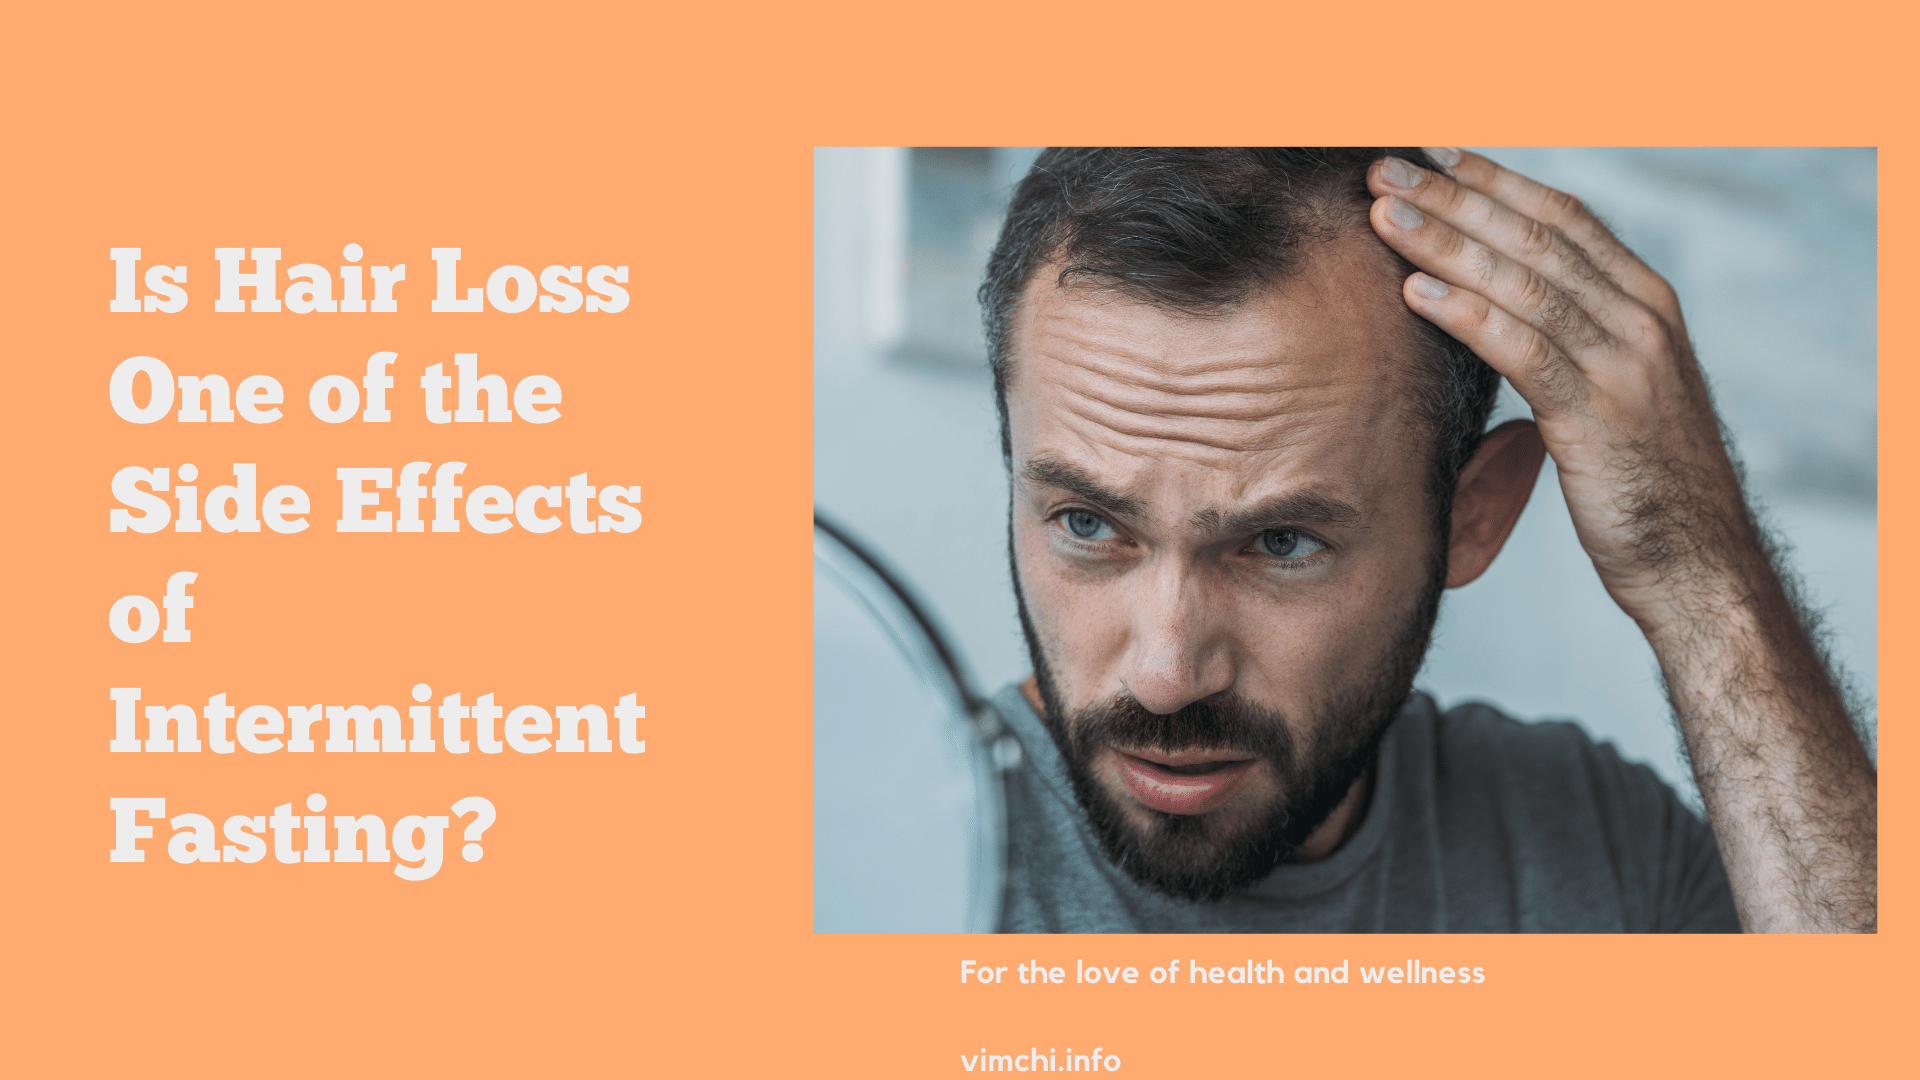 is hair loss one of the side effects of intermittent fasting